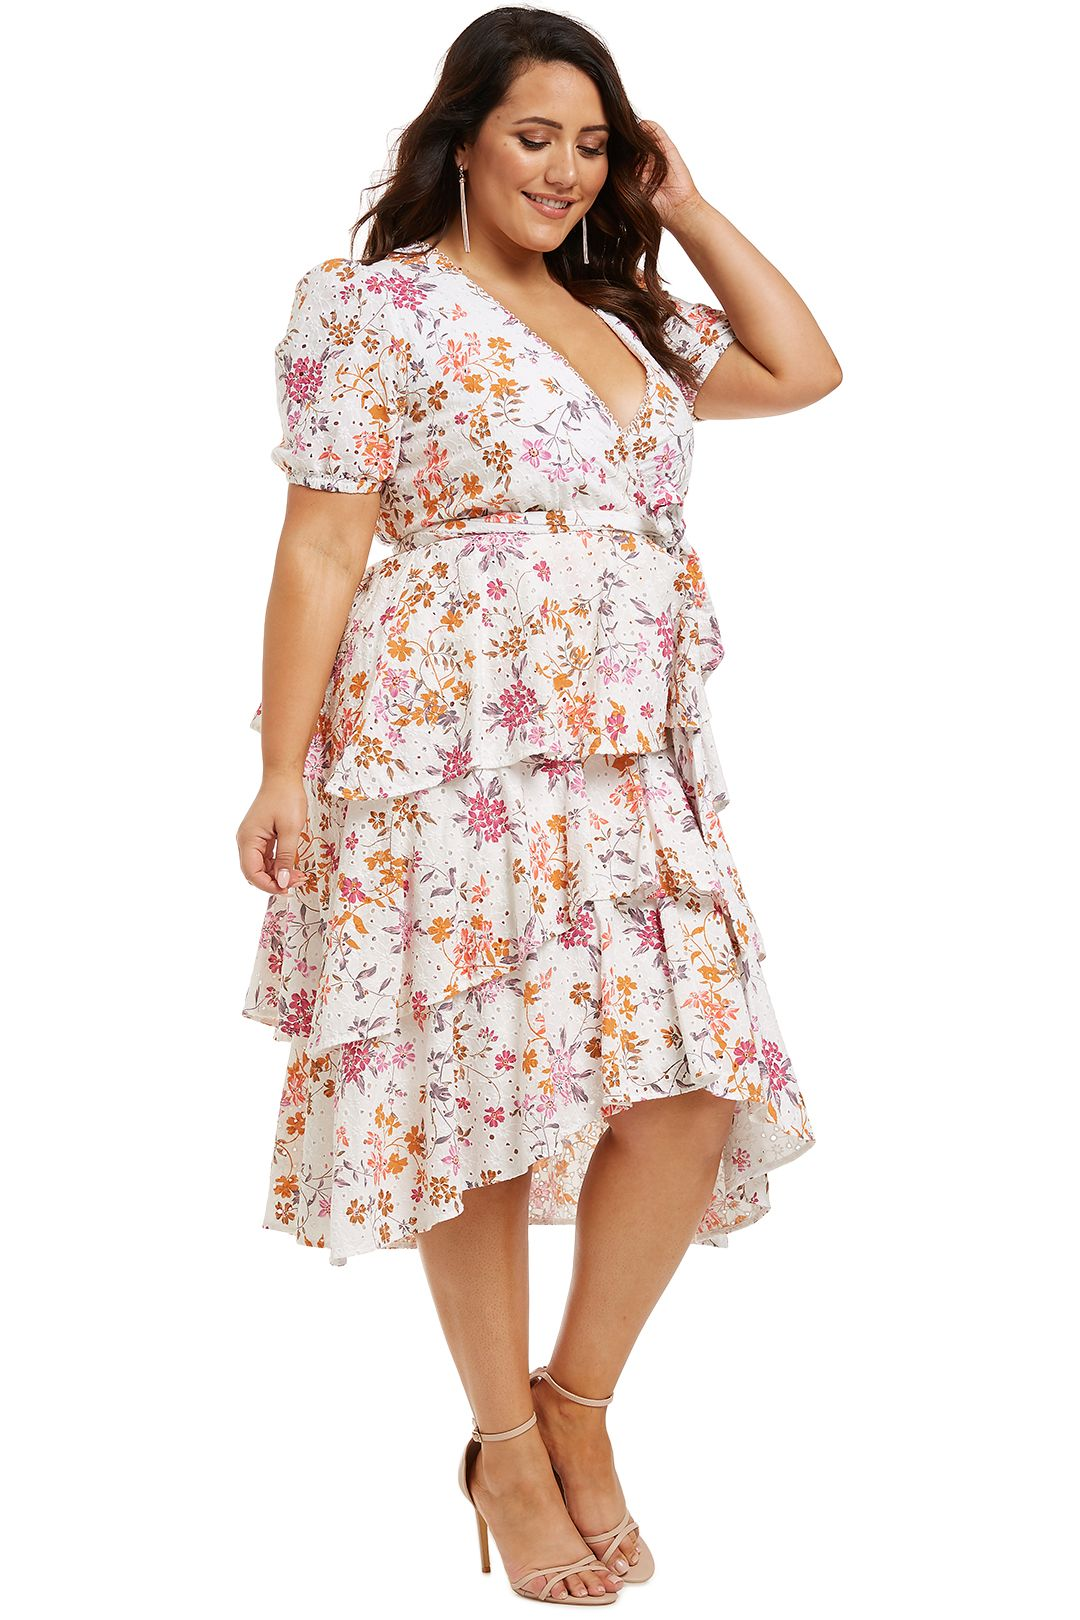 Talulah-Jasmine-Vines-Midi-Dress-Jasmine-Vines-Print-Side